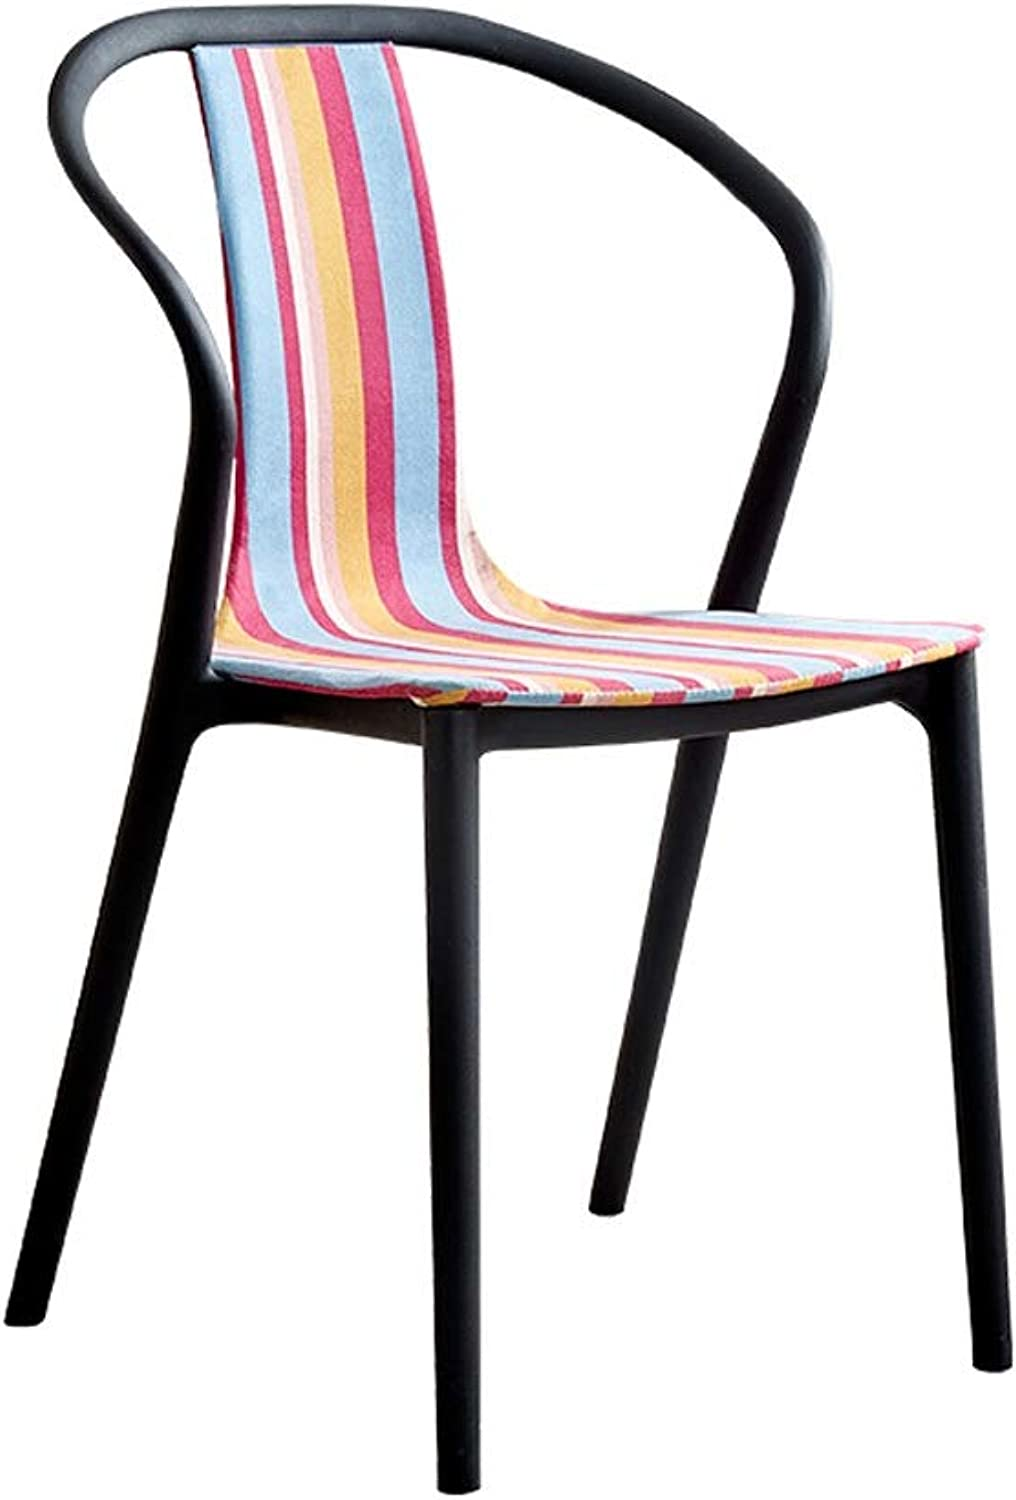 Household Armchairs, Nordic Casual Adult Chair Modern Simplicity Dining Chair with Backrest Breakfast Stool Bar Chair, for Kitchen, Restaurant, Cafe, Bar (Size  49  43  91cm) (color   H)